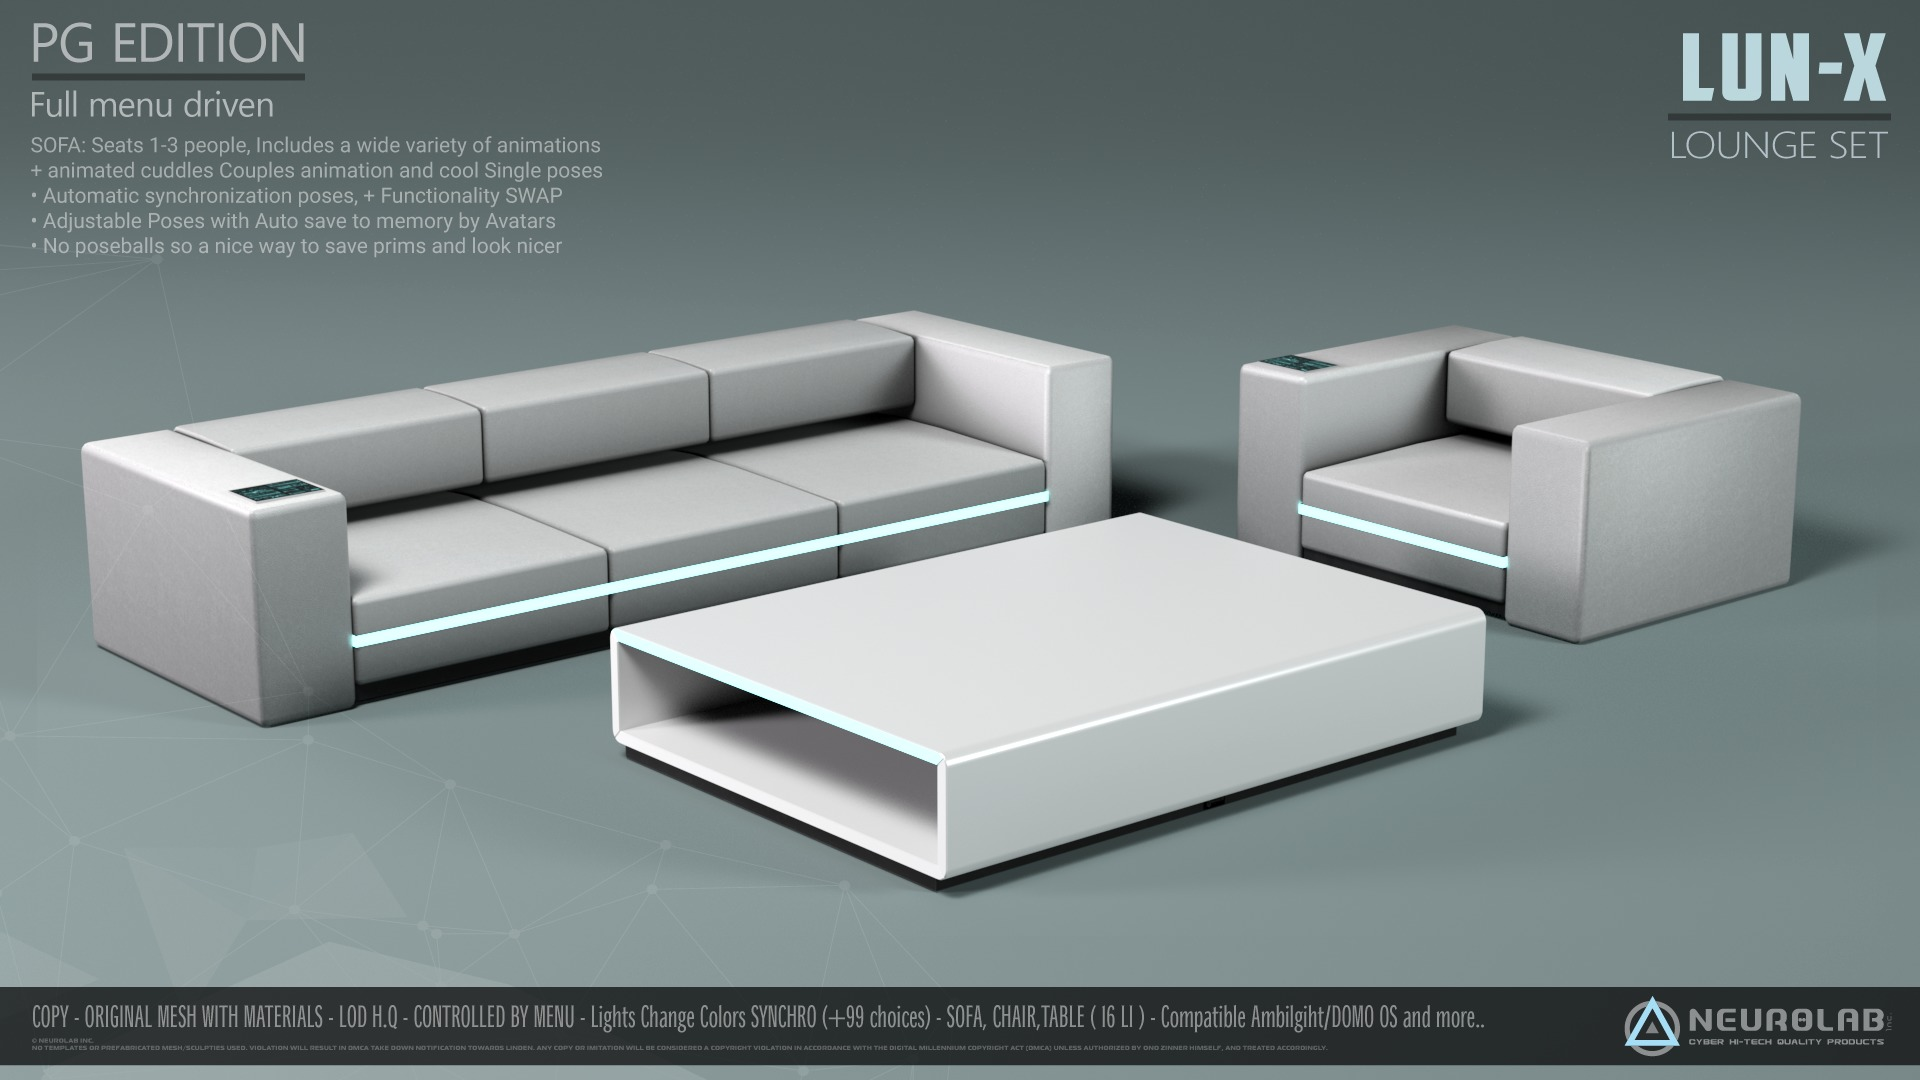 LUN-X SOFA LOUNGE SET Collection (V.1)